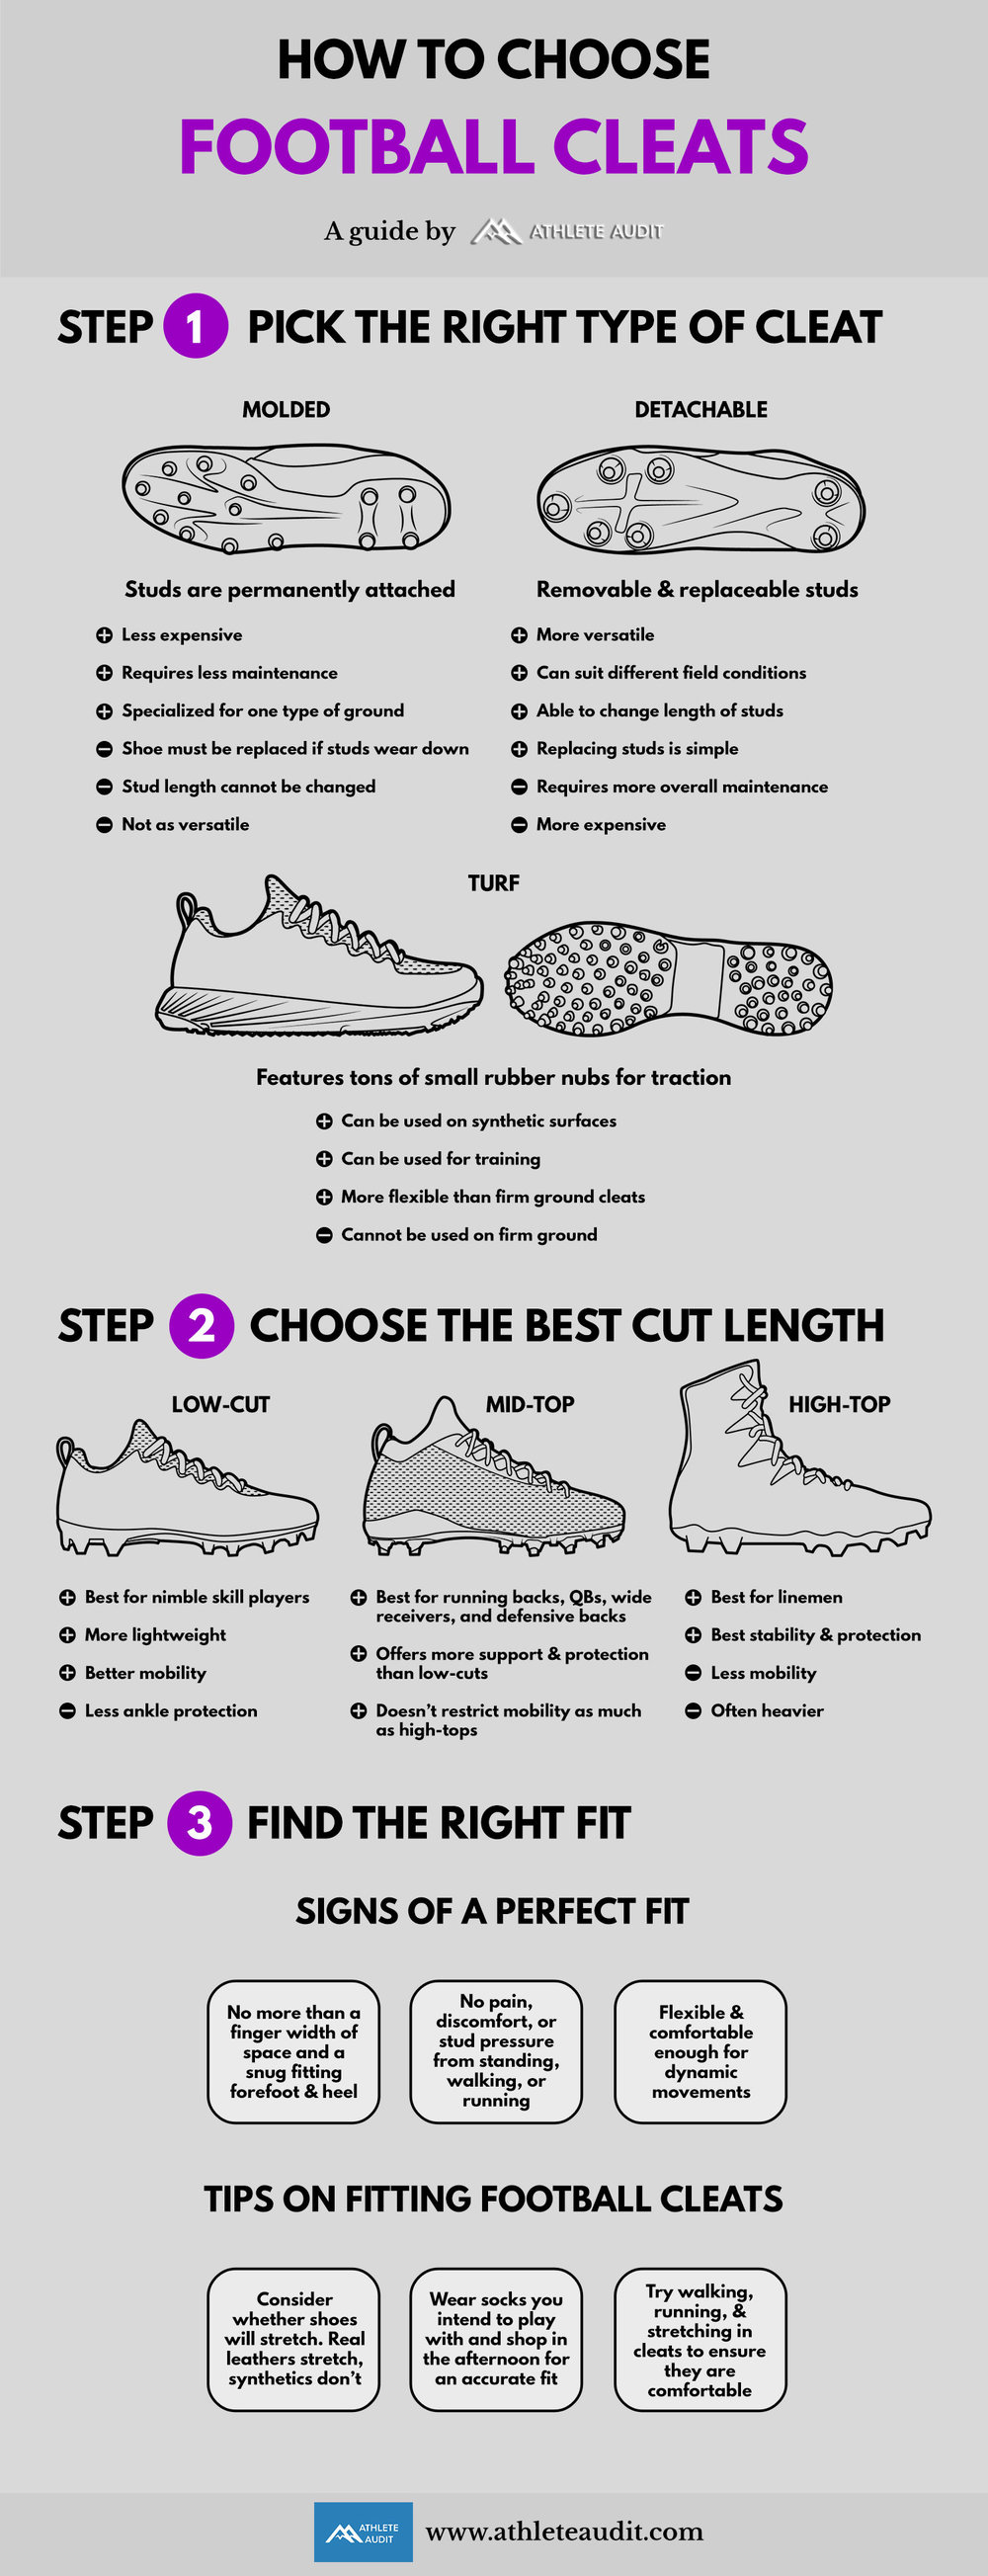 How-to-Choose-Football-Cleats-Infographic-Athlete-Audit.jpg